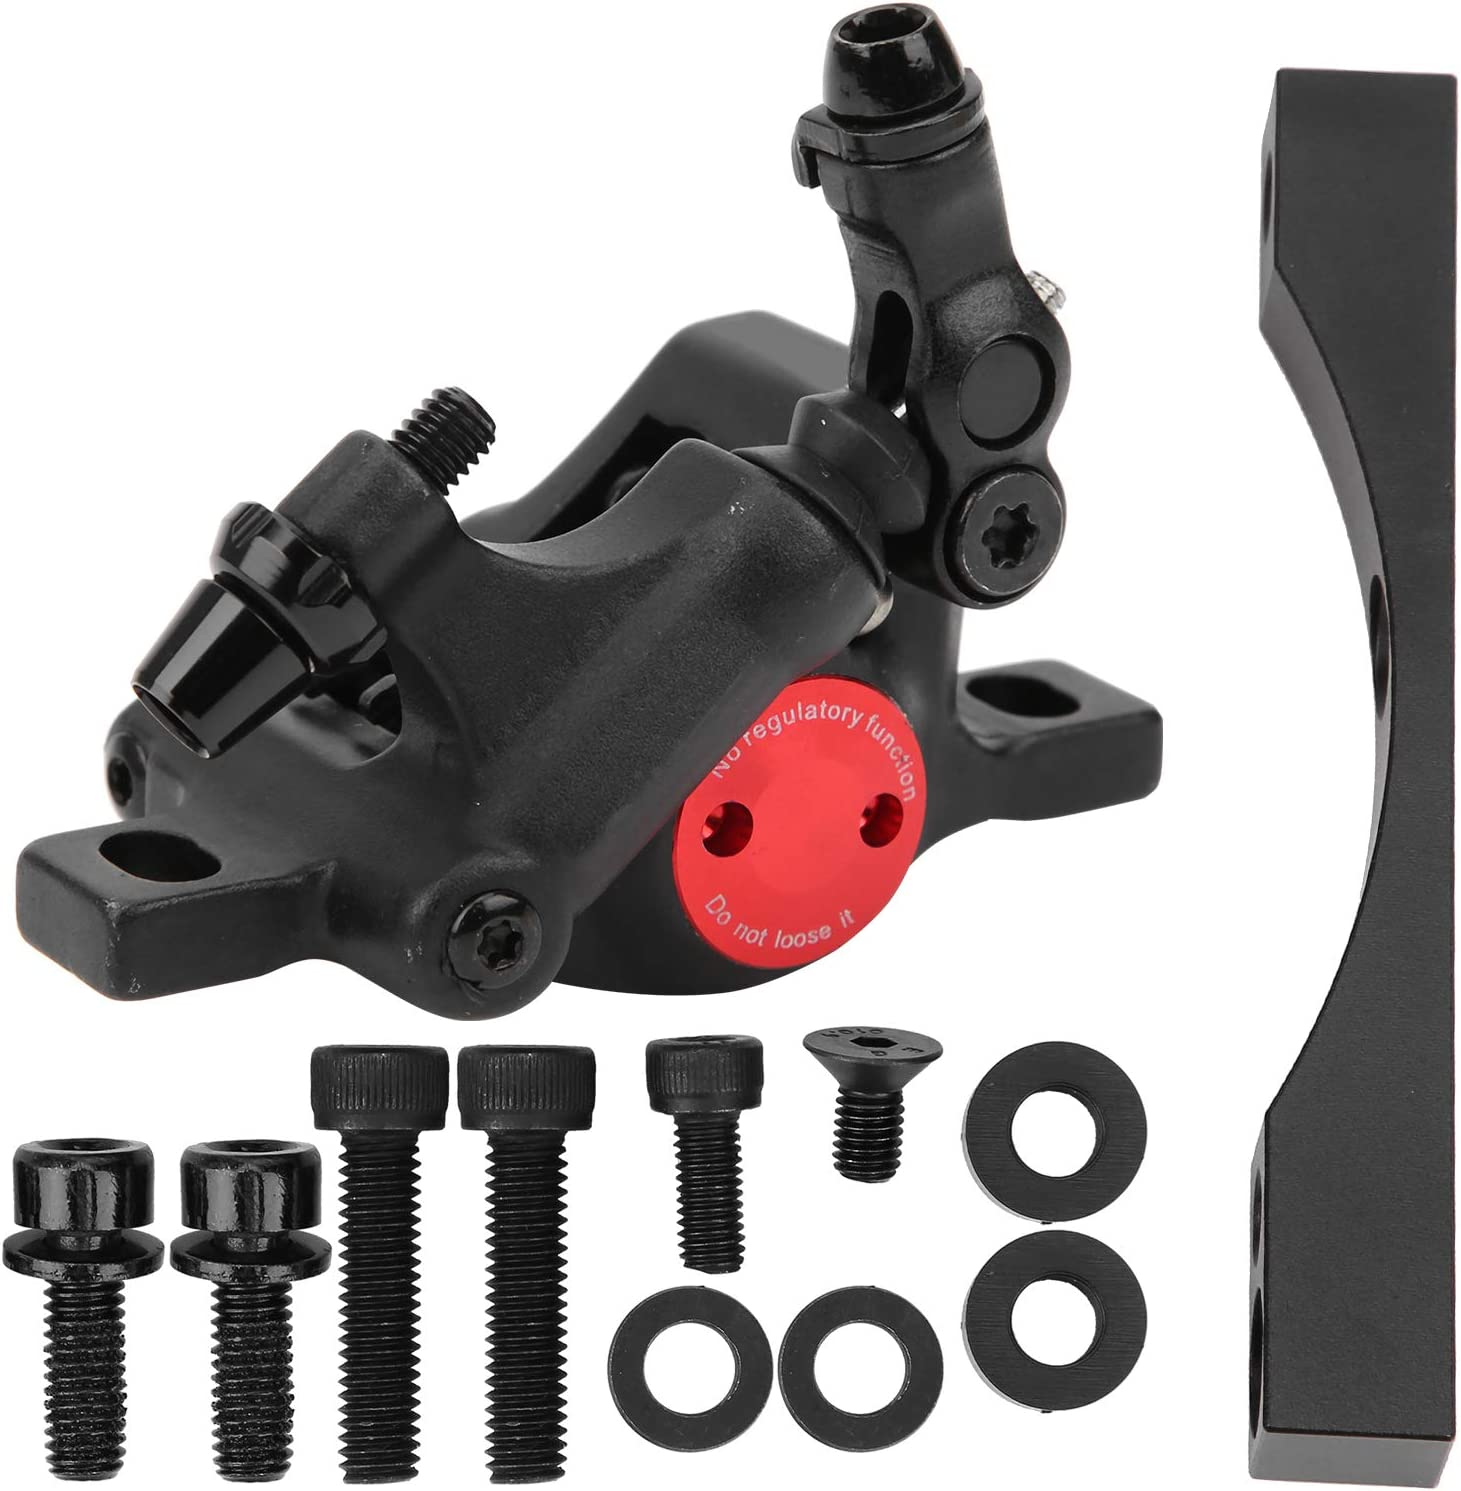 VGEBY Scooter Brake Super Cheap mail order sales special price Caliper Sets E-Scooter Conversio Disc